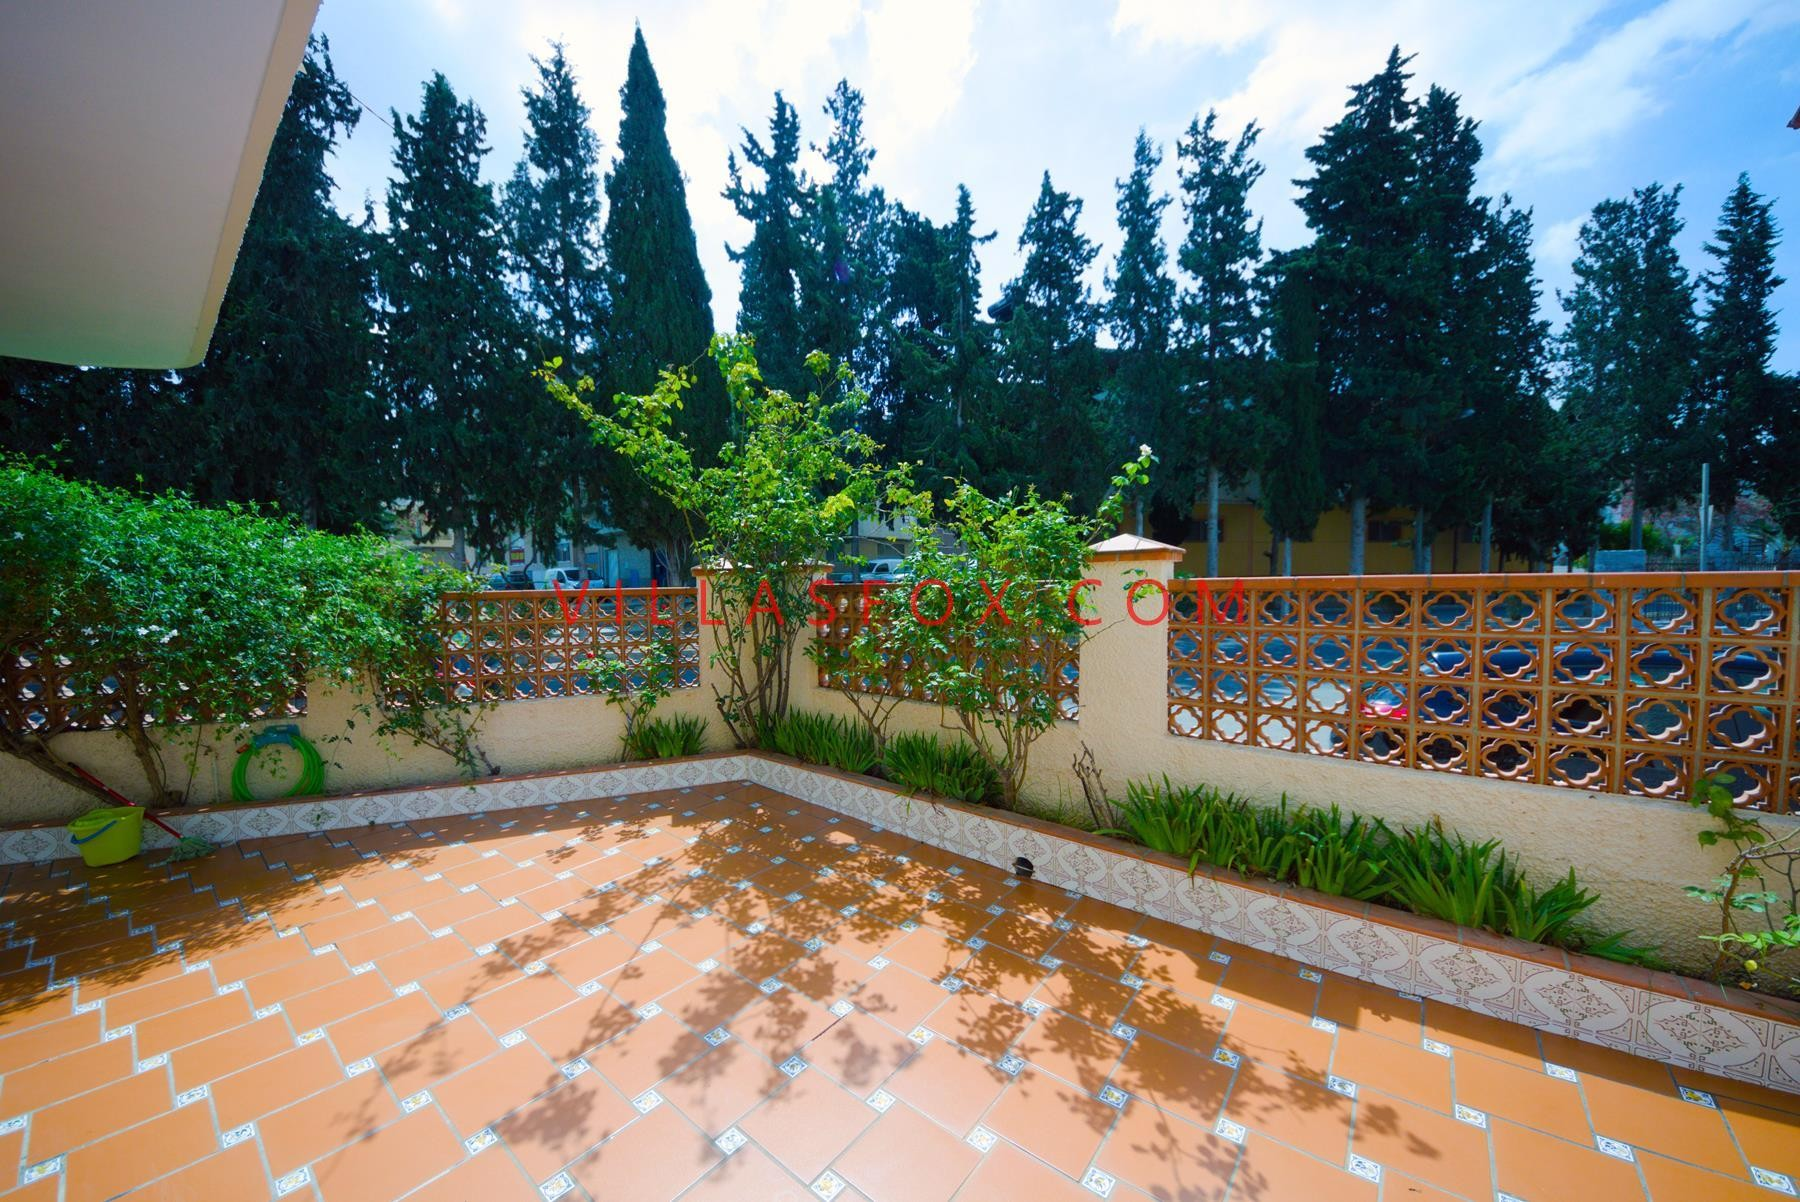 4-bedroom large townhouse on corner plot with gardens, terraces, views, Benejúzar